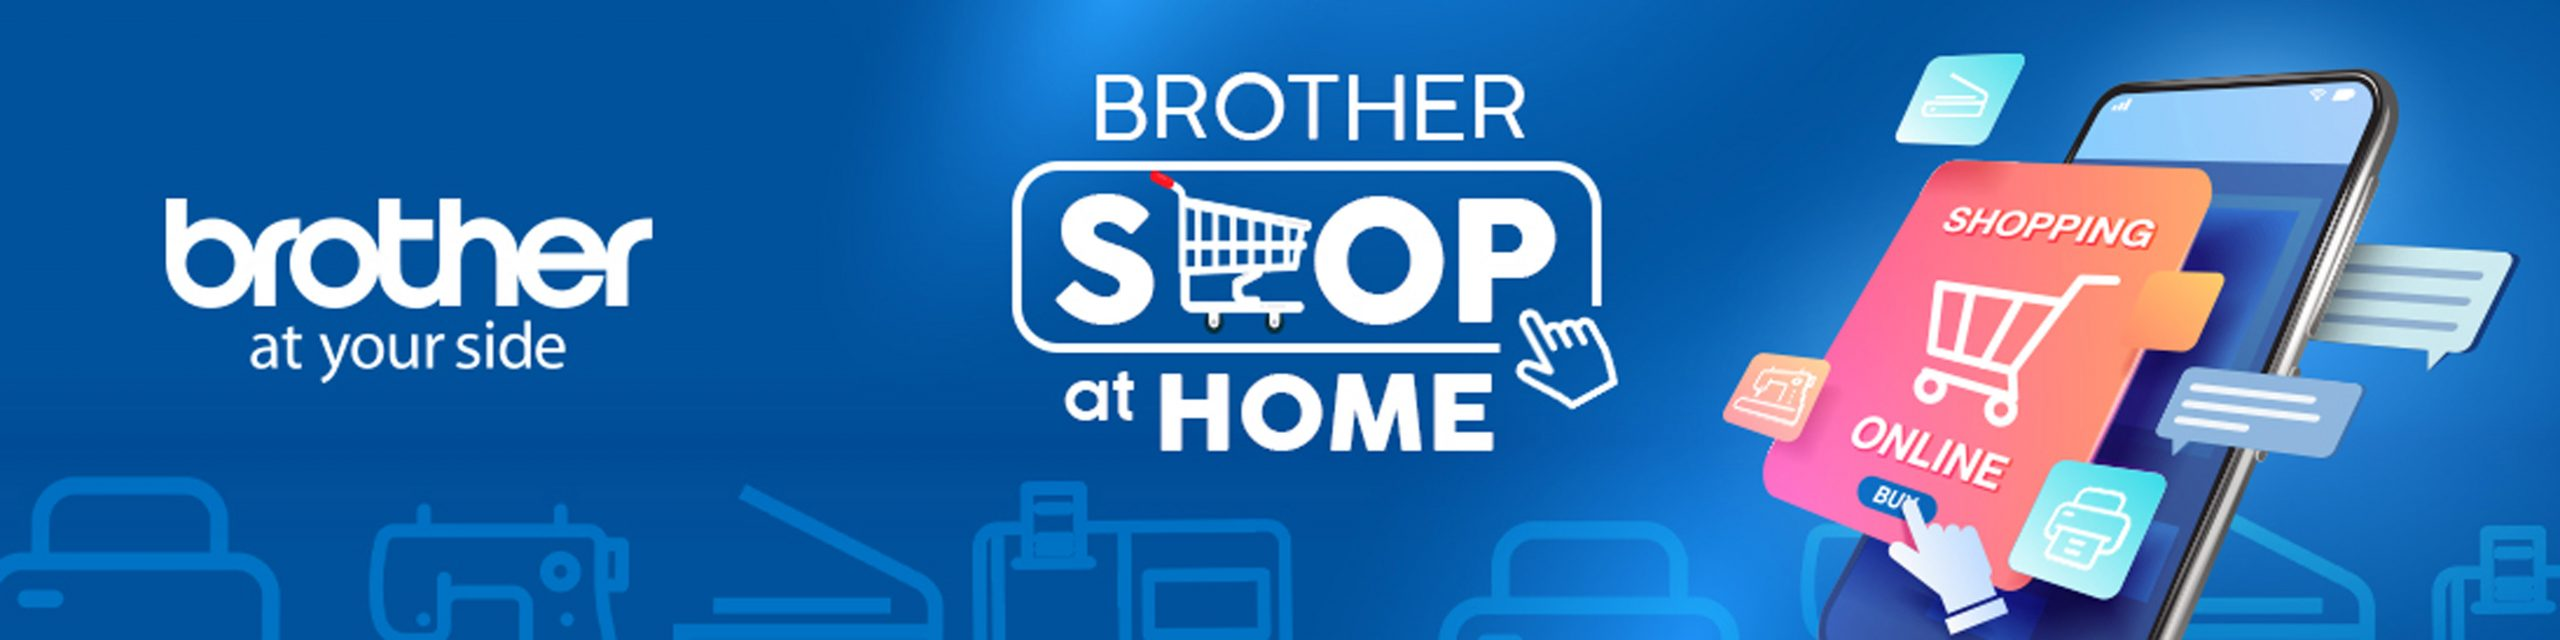 Brother Philippines continues digital push with Viber Shop @ Home